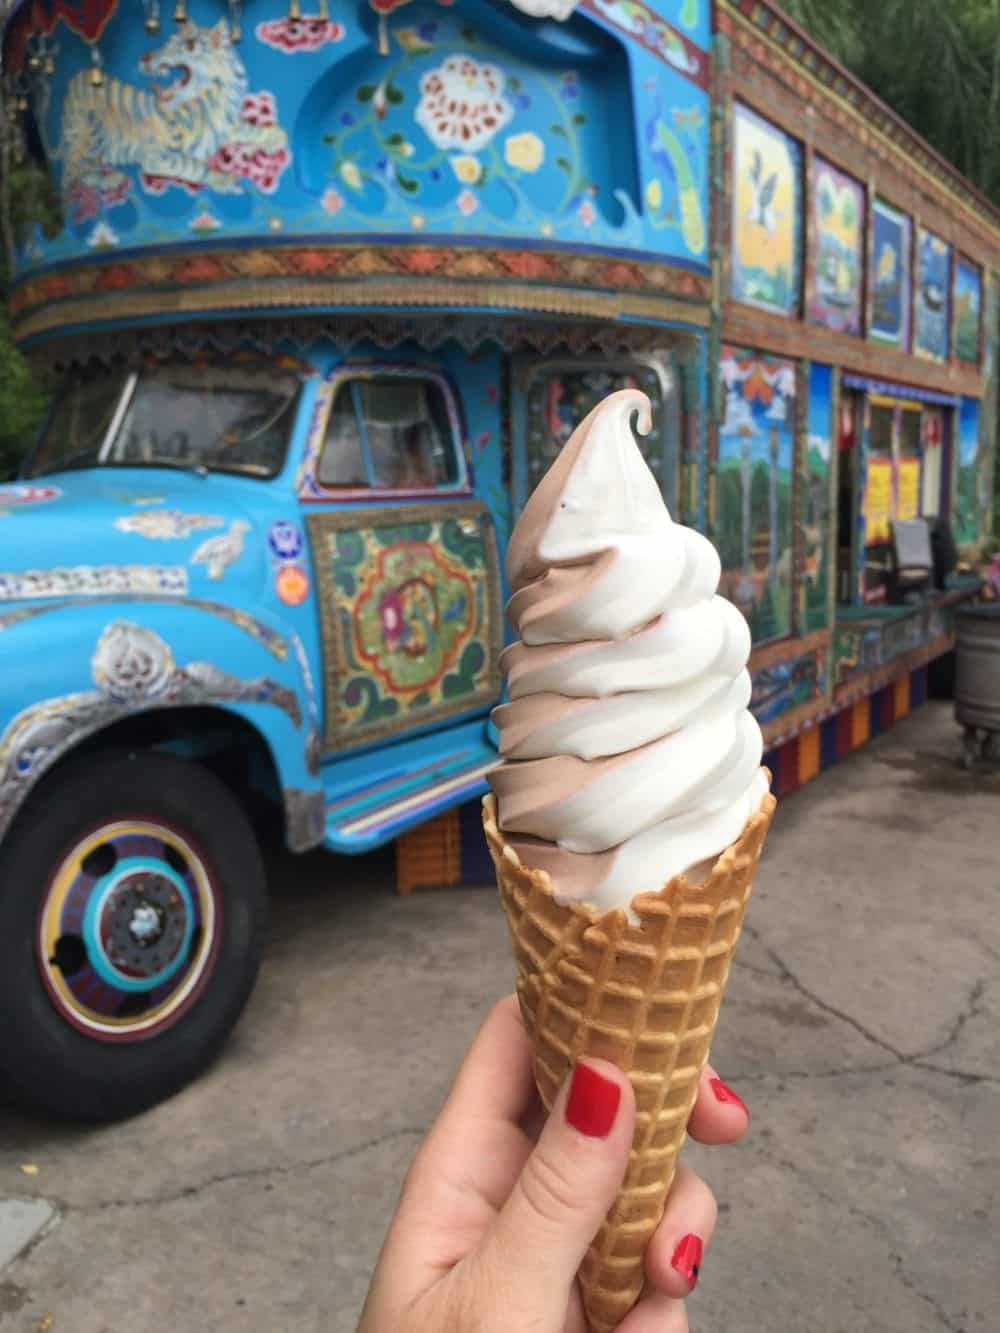 An Ice Cream Cone Filled with Vanilla and Chocolate Swirled Soft Serve